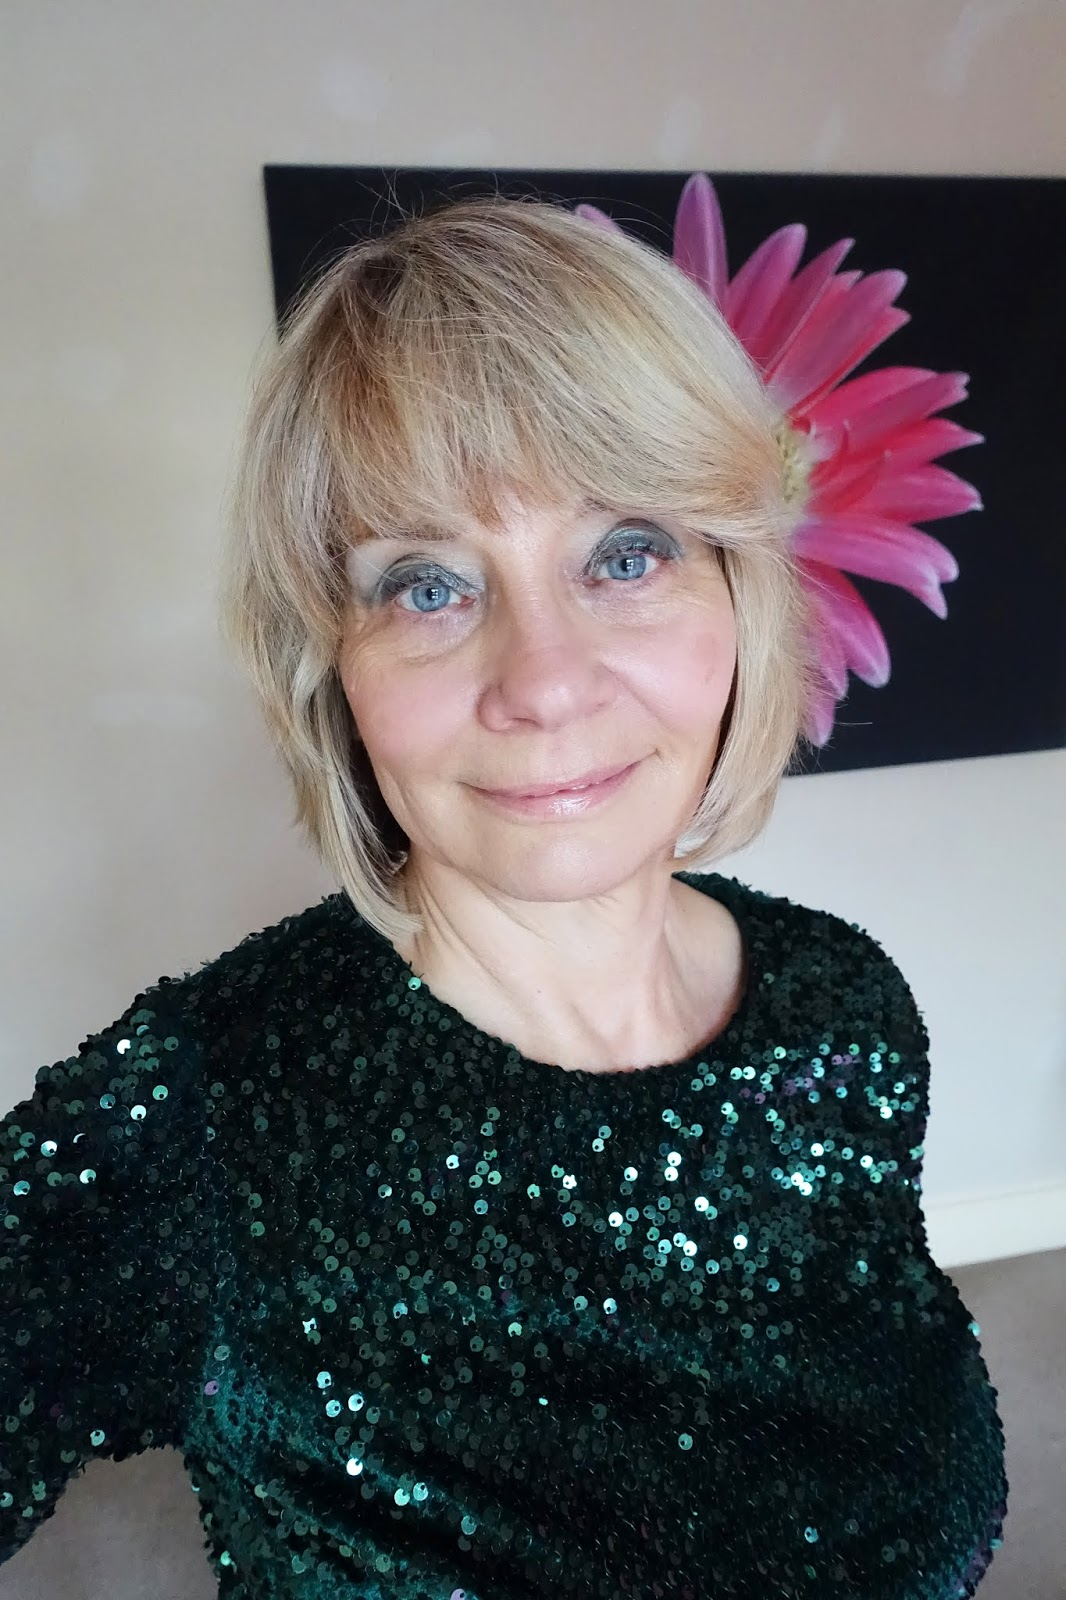 A dramatic green sparkly eyeshadow from Huda Beauty Emerald palette worn by over-50s blogger Gail Hanlon